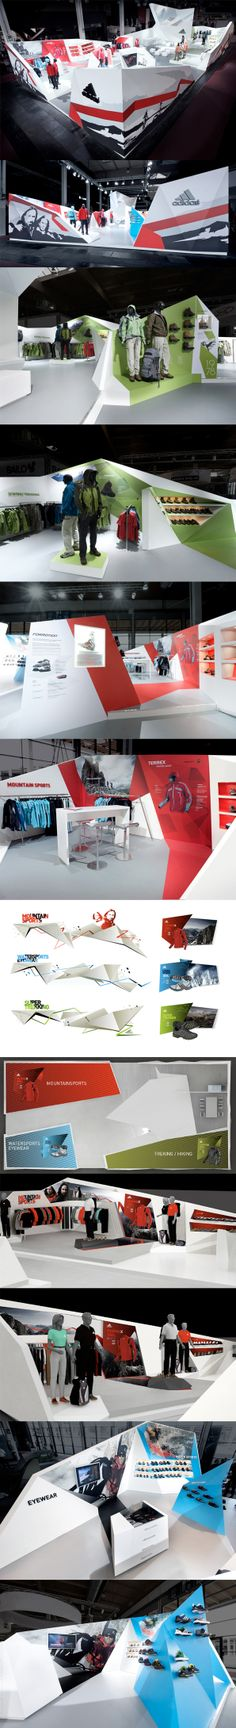 Exhibition stand.